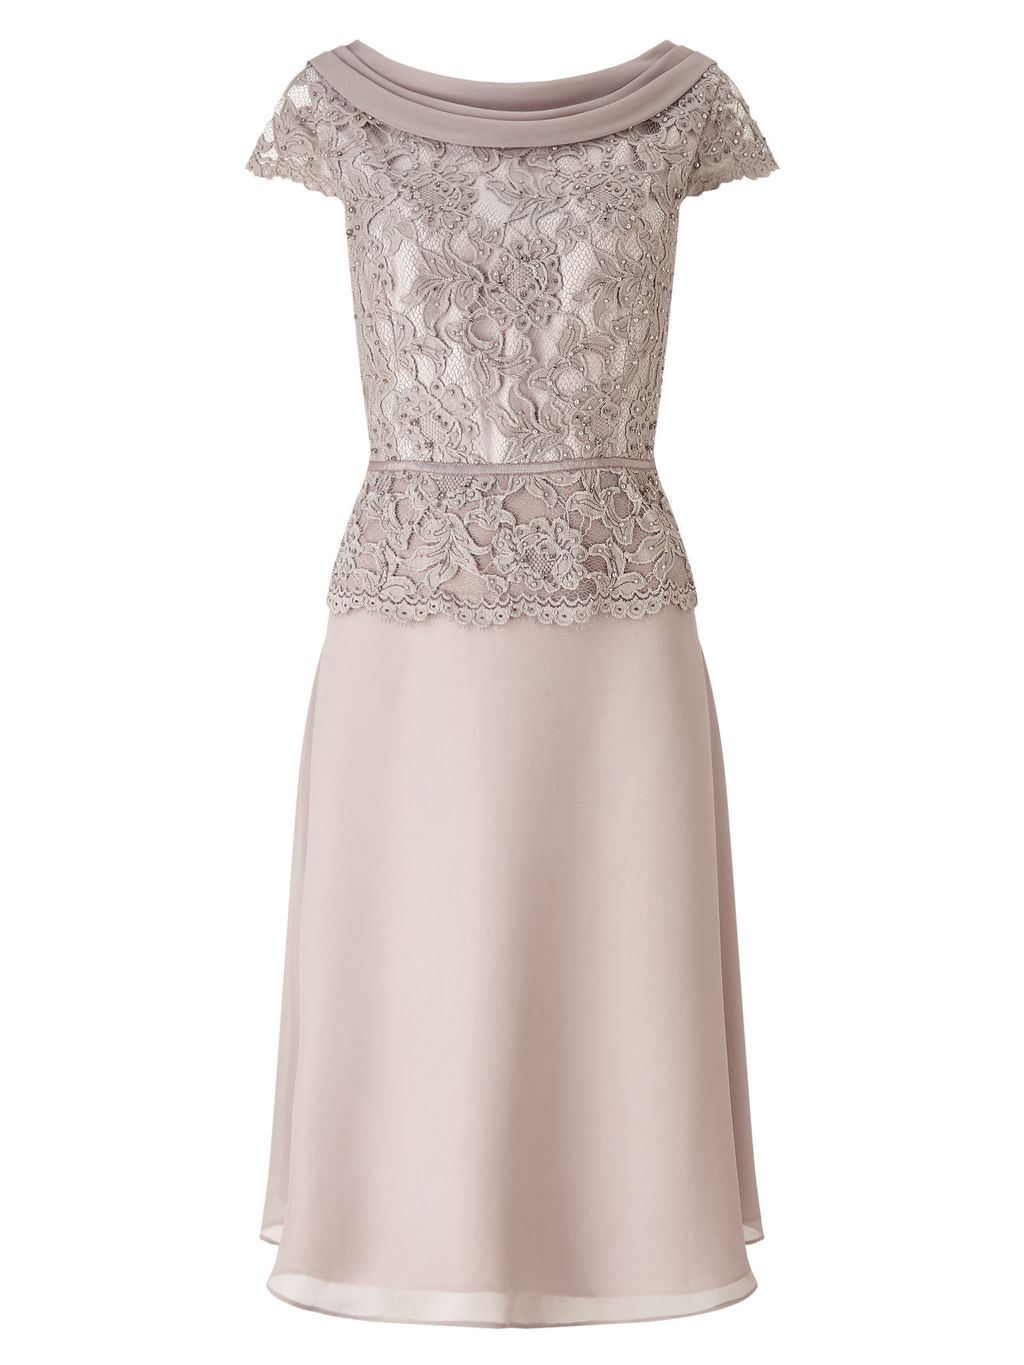 Embellished Lace Bodice Dress - style: shift; length: below the knee; neckline: slash/boat neckline; predominant colour: stone; occasions: evening, occasion; fit: soft a-line; fibres: polyester/polyamide - 100%; sleeve length: short sleeve; sleeve style: standard; texture group: lace; pattern type: fabric; pattern size: standard; pattern: patterned/print; season: s/s 2016; wardrobe: event